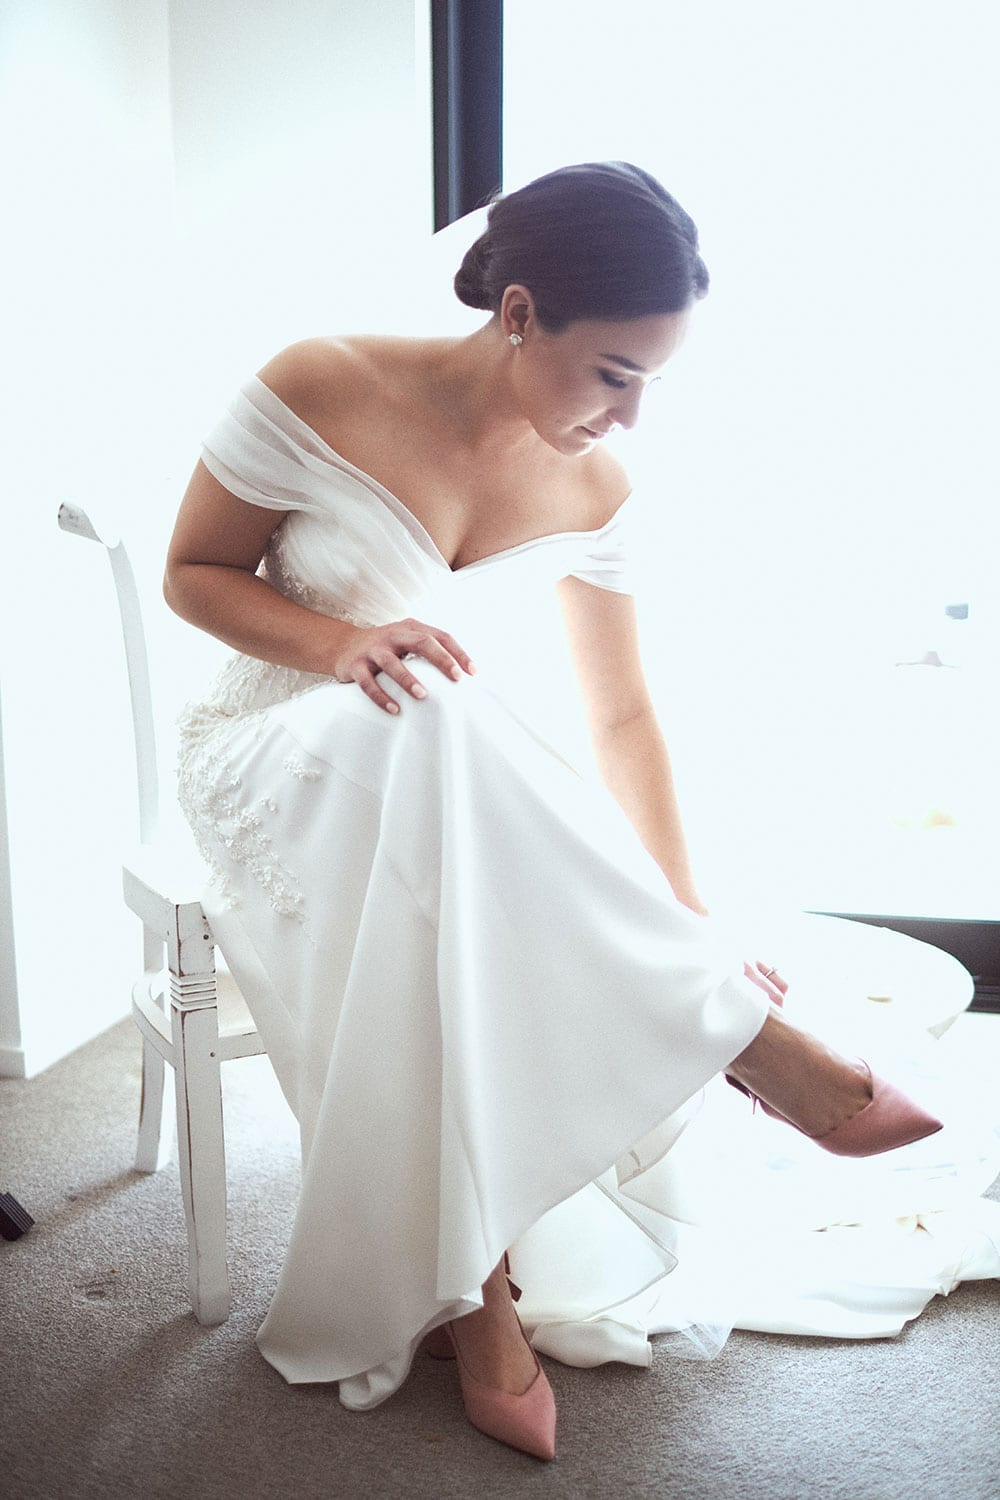 Vinka Design Features Real Weddings - bride in custom made gown with stunning silhouette and lace. Bride putting on wedding shoes